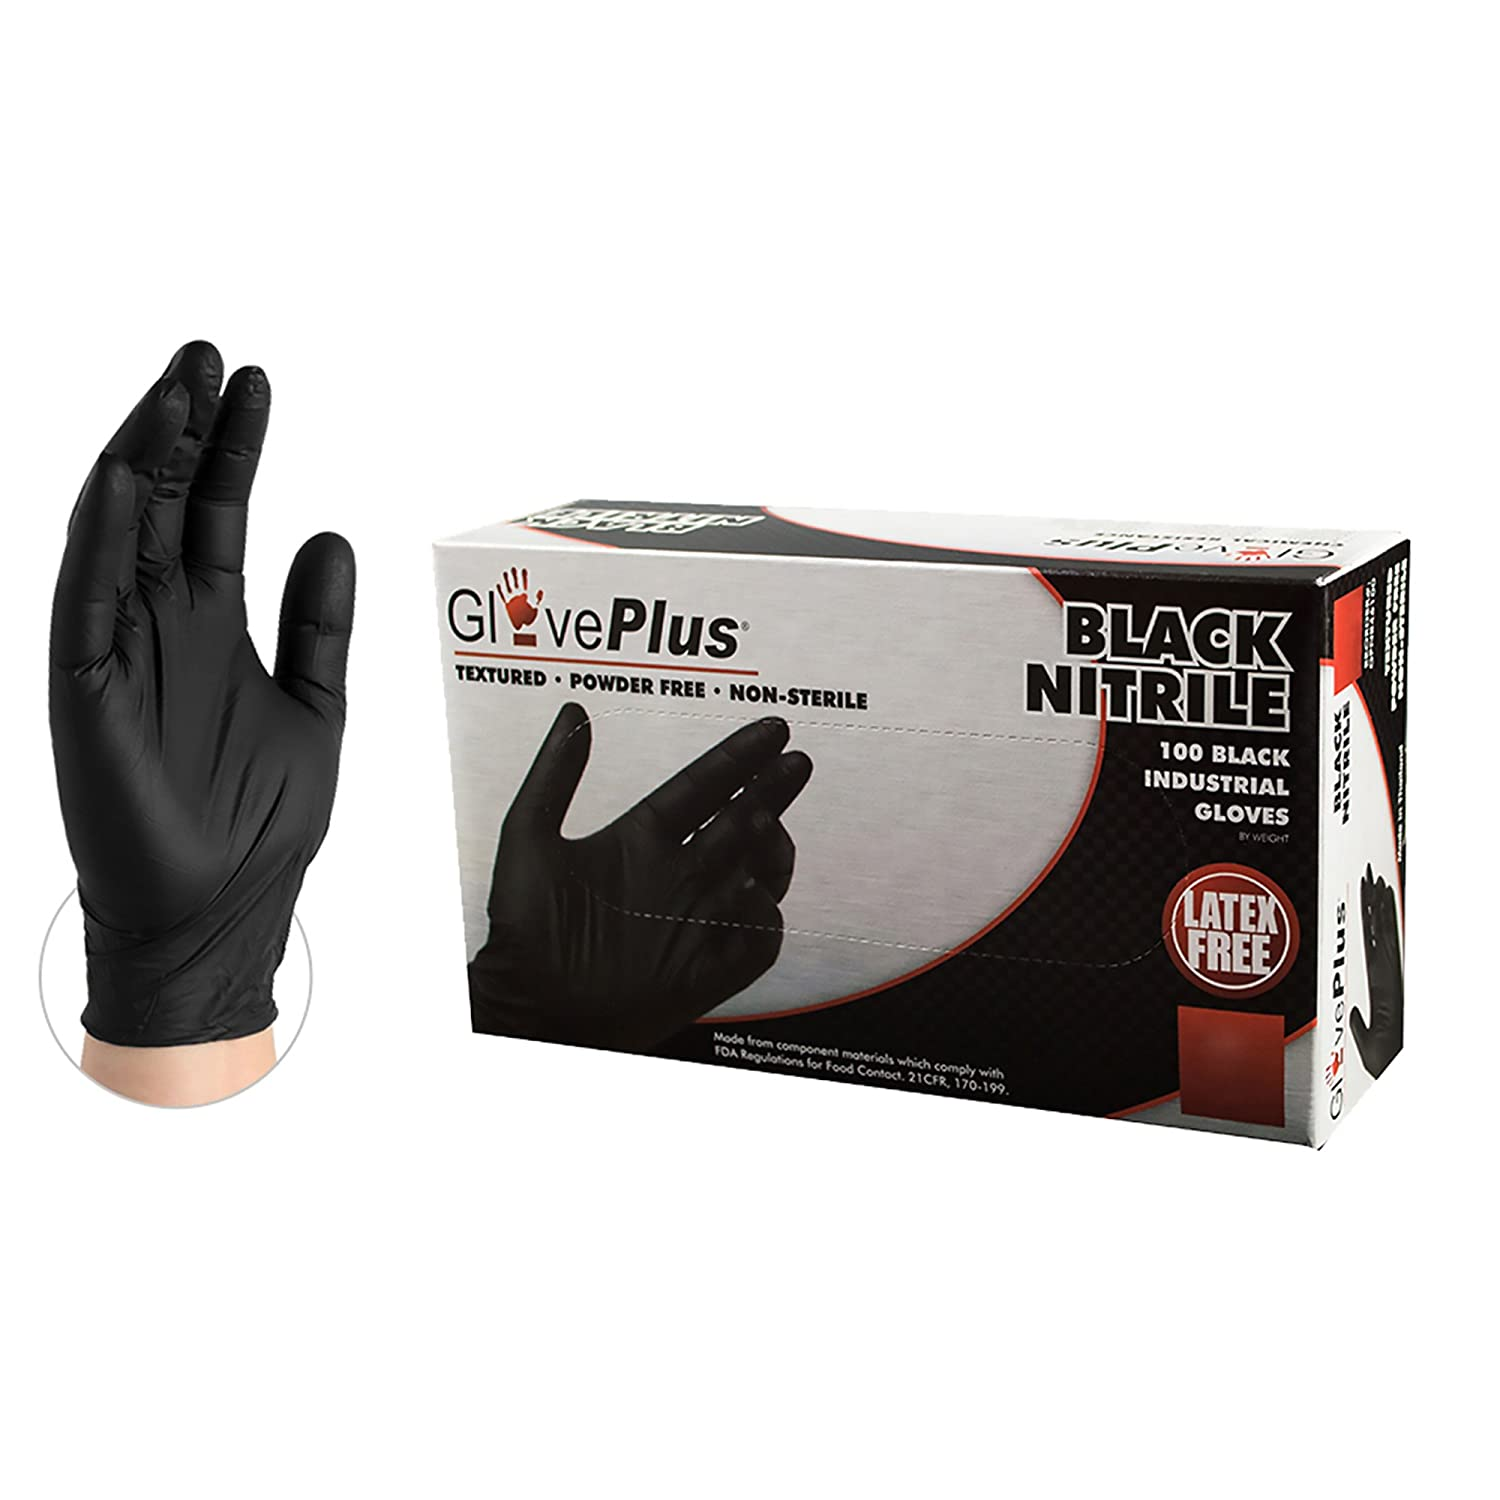 GlovePlus Industrial Black Nitrile Gloves - 5 mil, Latex Free, Powder Free, Textured, Disposable, Medium, GPNB44100-BX, Box of 100